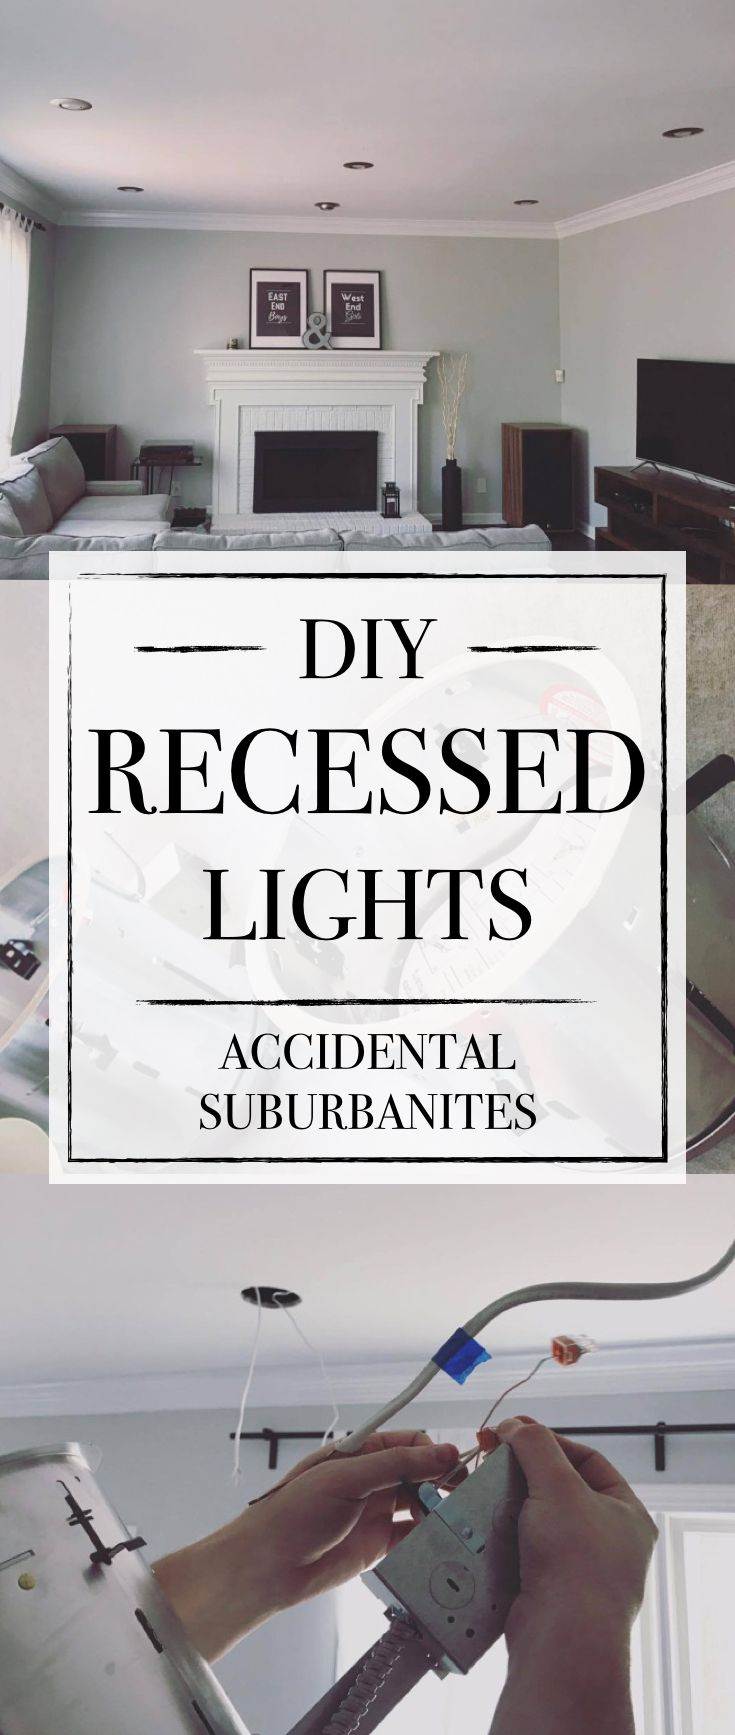 DIY Recessed Lighting - how to install recessed lights with no attic access, convert existing light, replace ceiling fan with can lights